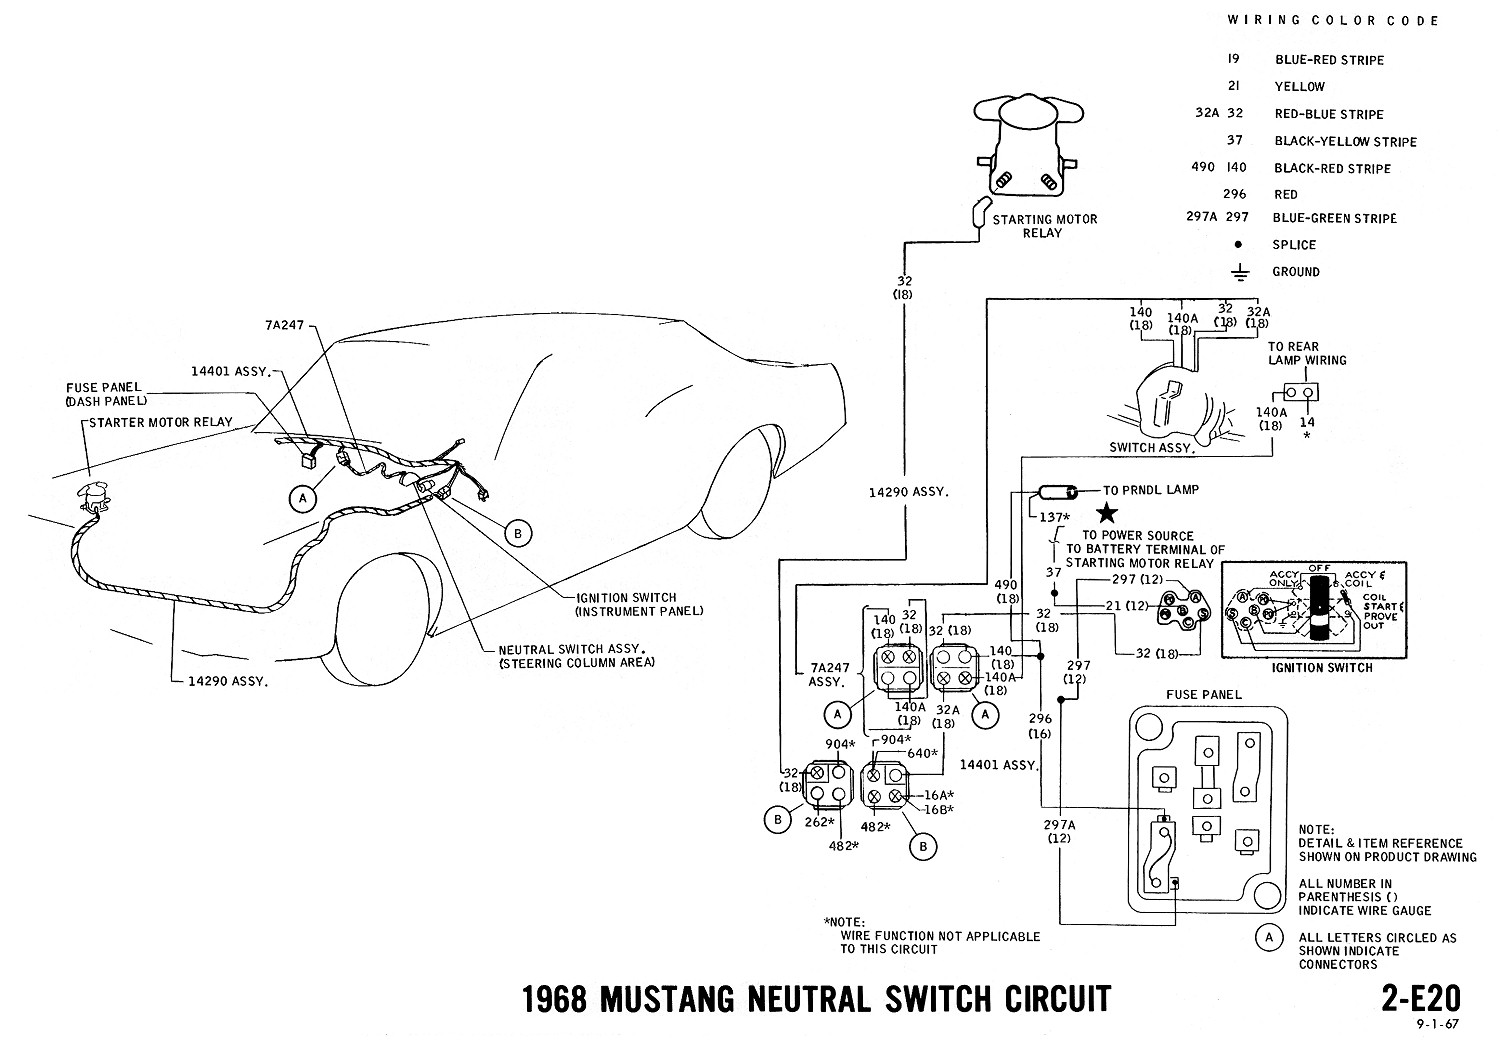 1967 mustang charging system wire diagram diy enthusiasts wiring 1964 ford mustang wiring diagram 1968 mustang wiring diagrams evolving software rh peterfranza com 1965 mustang wiring diagram manual 67 ford mustang ignition wiring